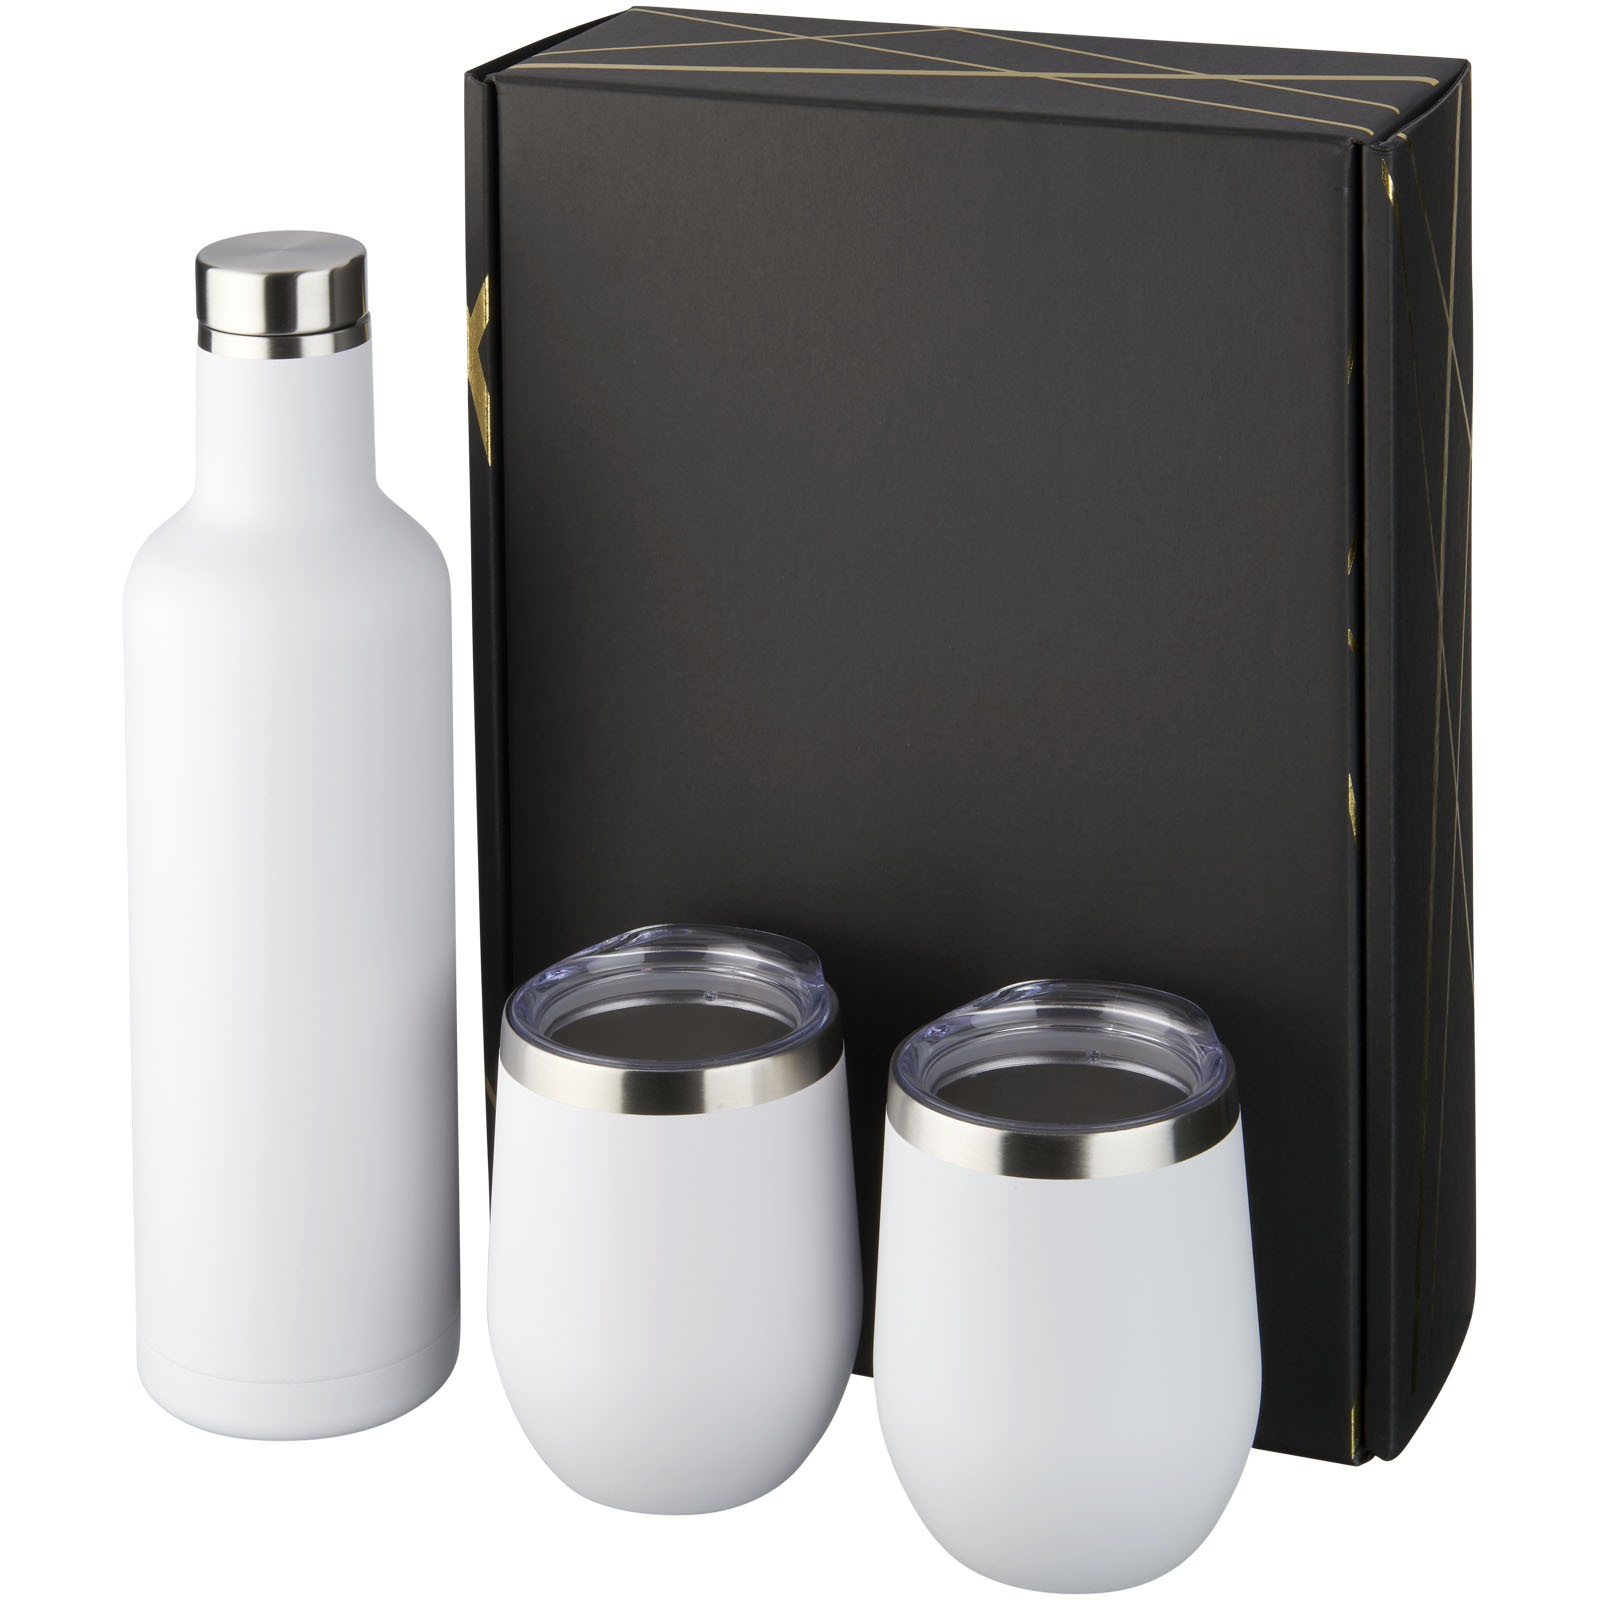 Pinto and Corzo copper vacuum insulated gift set - White